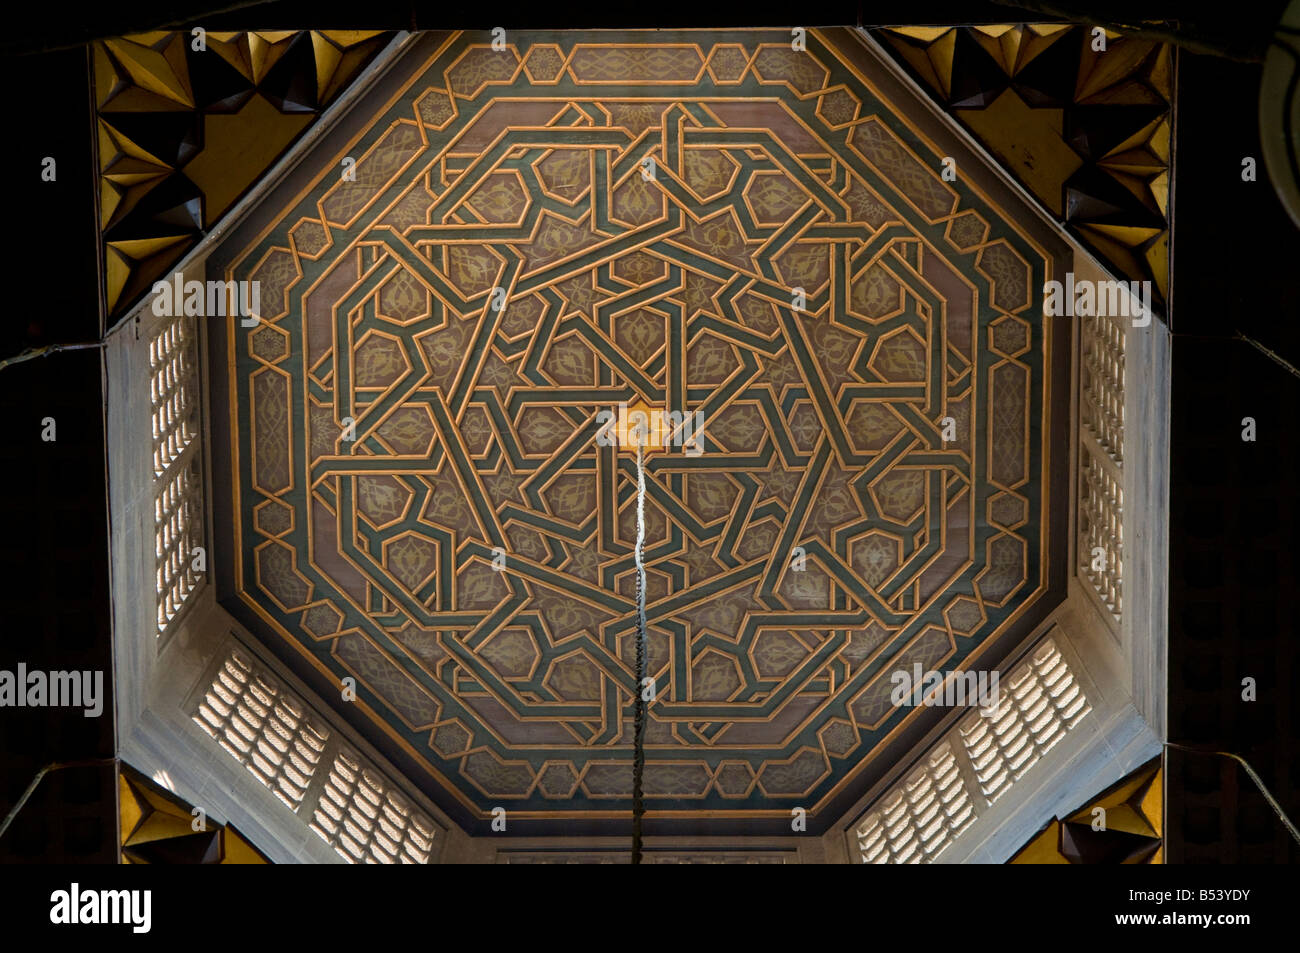 Decorated ceiling inside Al Azhar Mosque university in Old Islamic Cairo - Stock Image